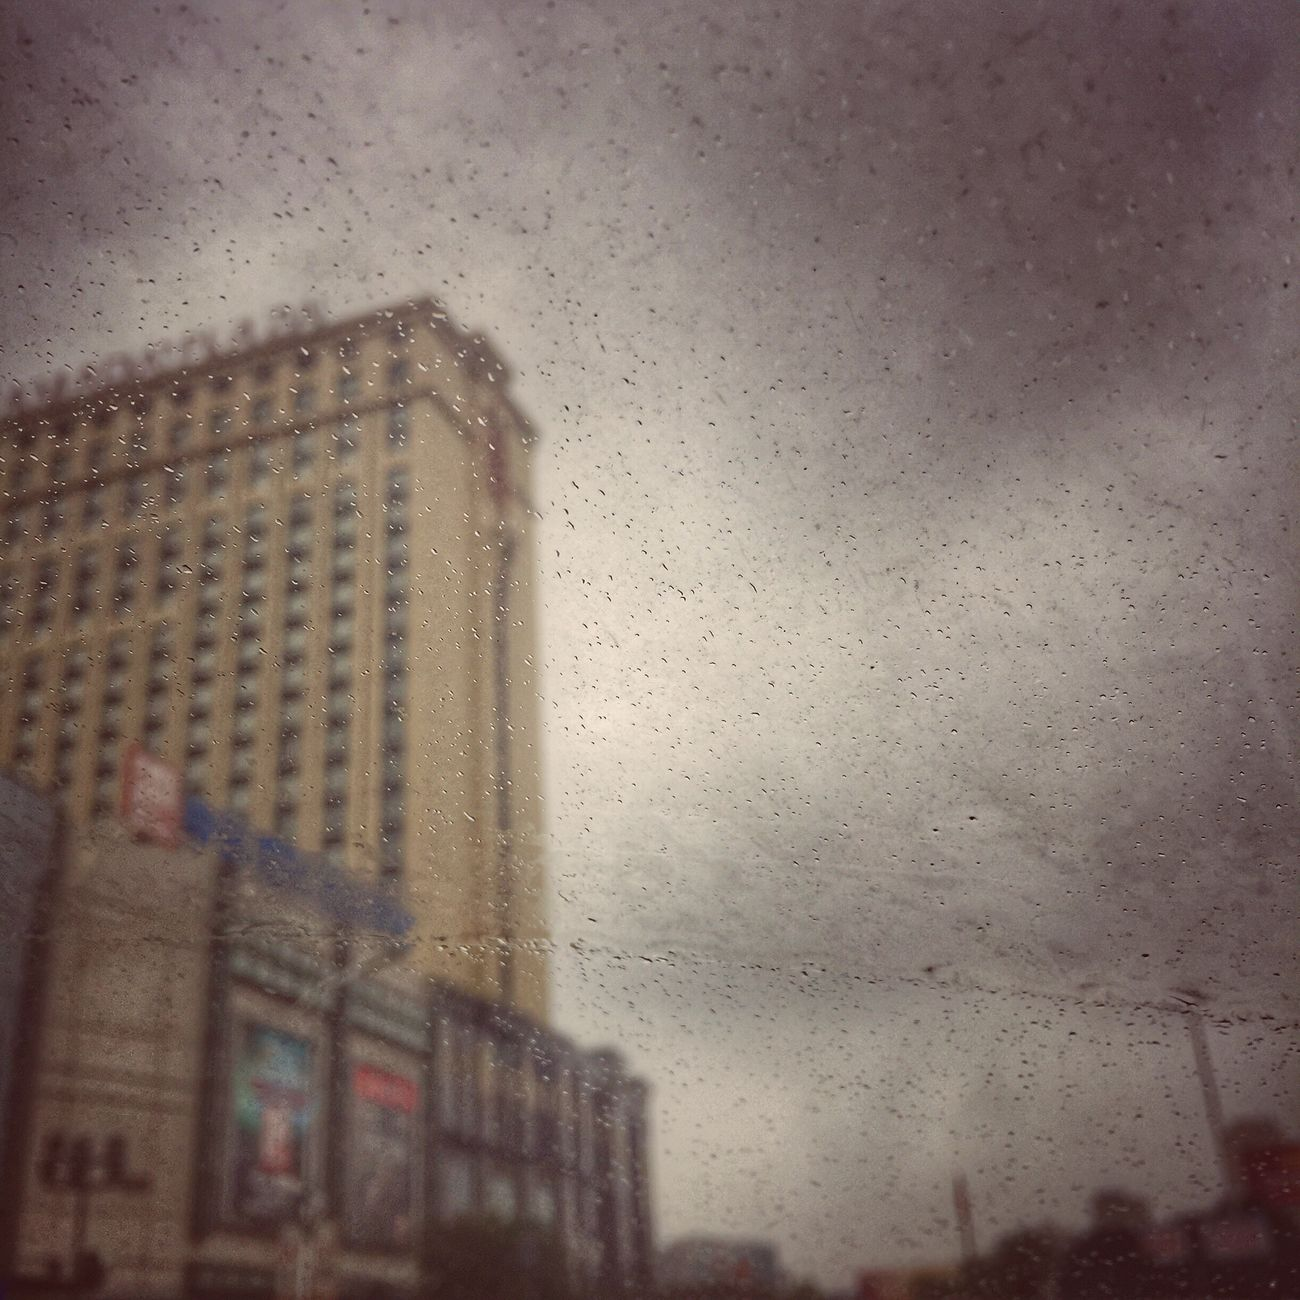 Iphoneonly Iphone 6 Plus IPhoneography Street Photography Rainy Days Ramada Hotel